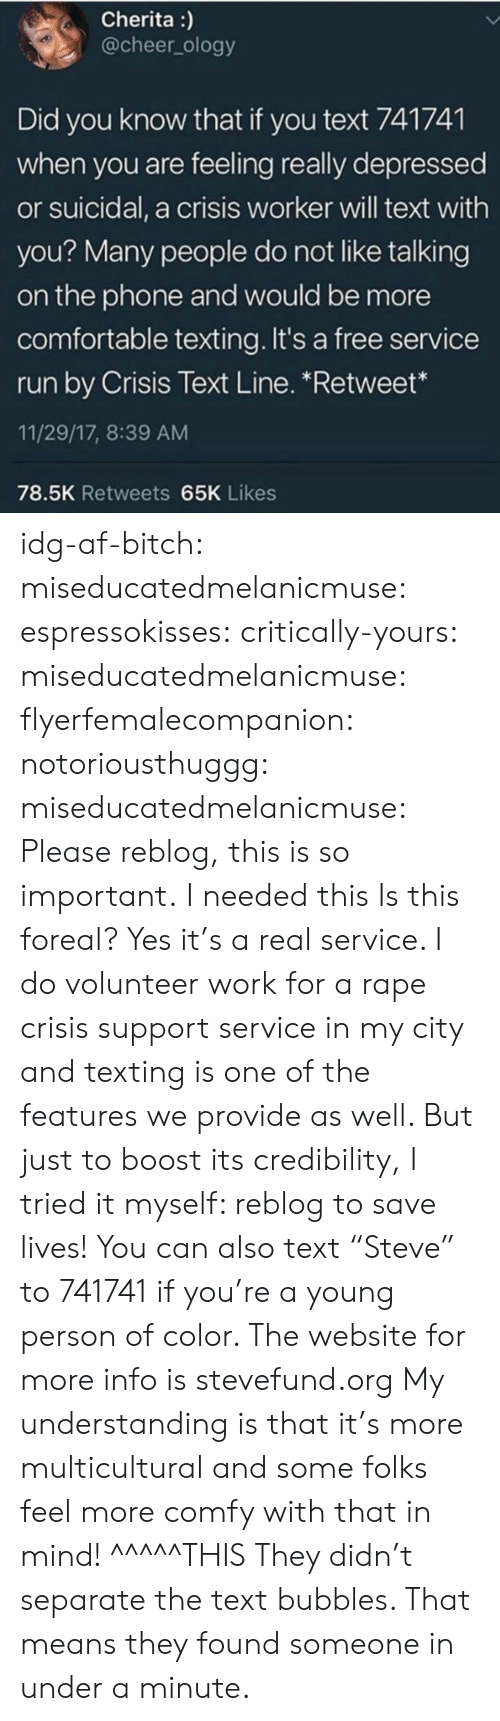 """Af, Bitch, and Comfortable: Cherita)  @cheer_ology  Did you know that if you text 741741  when you are feeling really depressed  or suicidal, a crisis worker will text with  you? Many peop g  on the phone and would be more  comfortable texting. It's a free service  run by Crisis Text Line. *Retweet""""  11/29/17, 8:39 AM  78.5K Retweets 65K Likes  le do not like talkin idg-af-bitch:  miseducatedmelanicmuse:  espressokisses:   critically-yours:  miseducatedmelanicmuse:  flyerfemalecompanion:   notoriousthuggg:   miseducatedmelanicmuse:  Please reblog, this is so important.  I needed this   Is this foreal?   Yes it's a real service. I do volunteer work for a rape crisis support service in my city and texting is one of the features we provide as well. But just to boost its credibility, I tried it myself:   reblog to save lives!   You can also text """"Steve"""" to 741741 if you're a young person of color. The website for more info is stevefund.org  My understanding is that it's more multicultural and some folks feel more comfy with that in mind!    ^^^^^THIS    They didn't separate the text bubbles. That means they found someone in under a minute."""